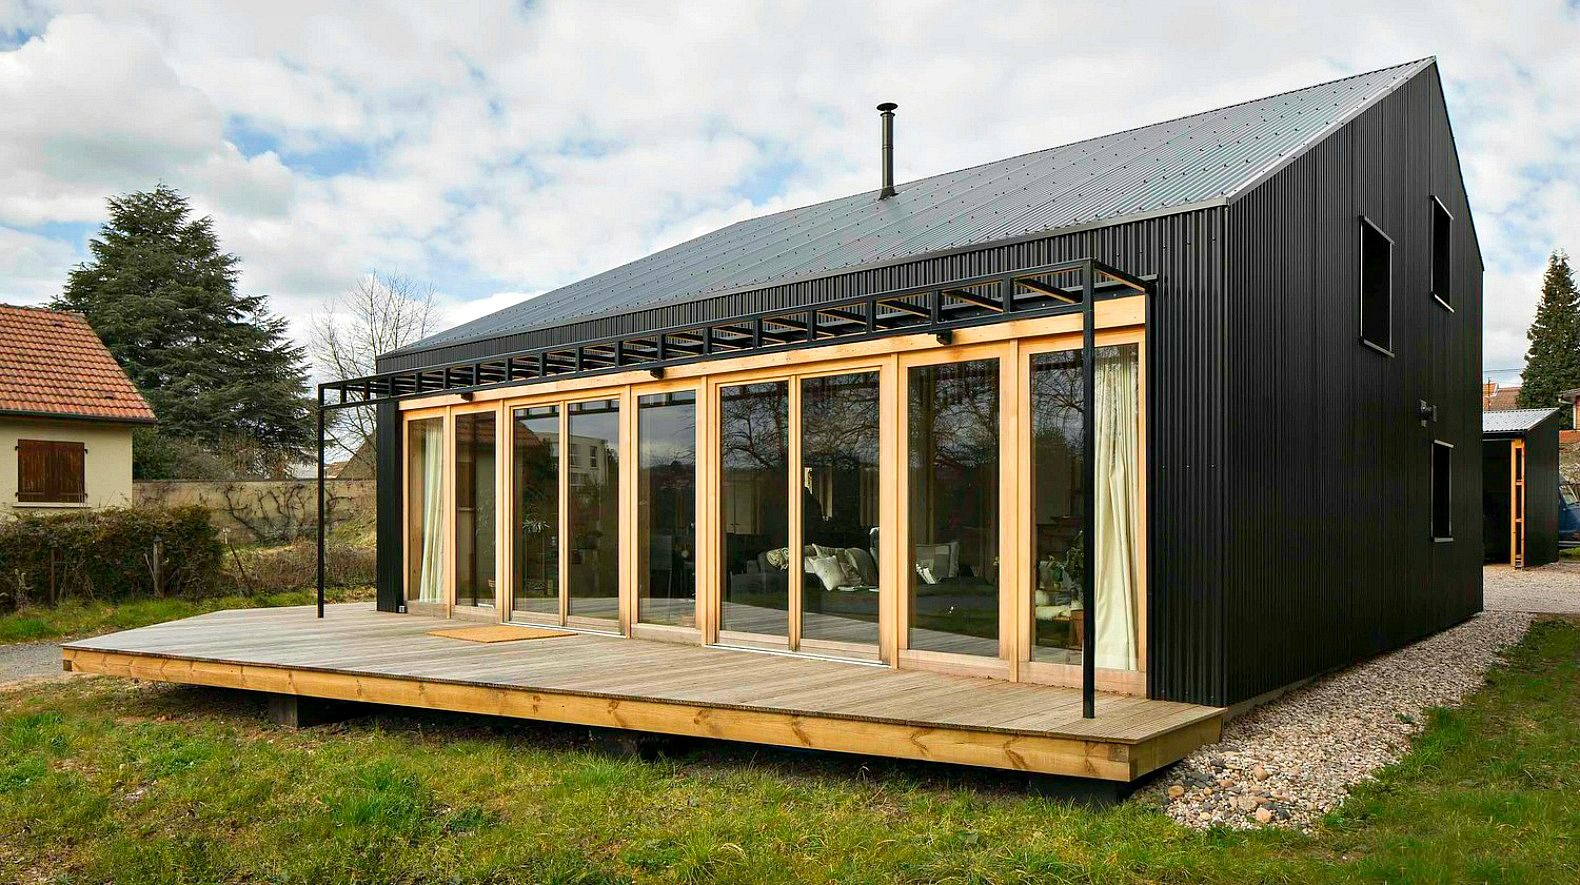 Studiolada Used All Wood Materials To Create This Affordable Open Source  Home Anyone Can Build